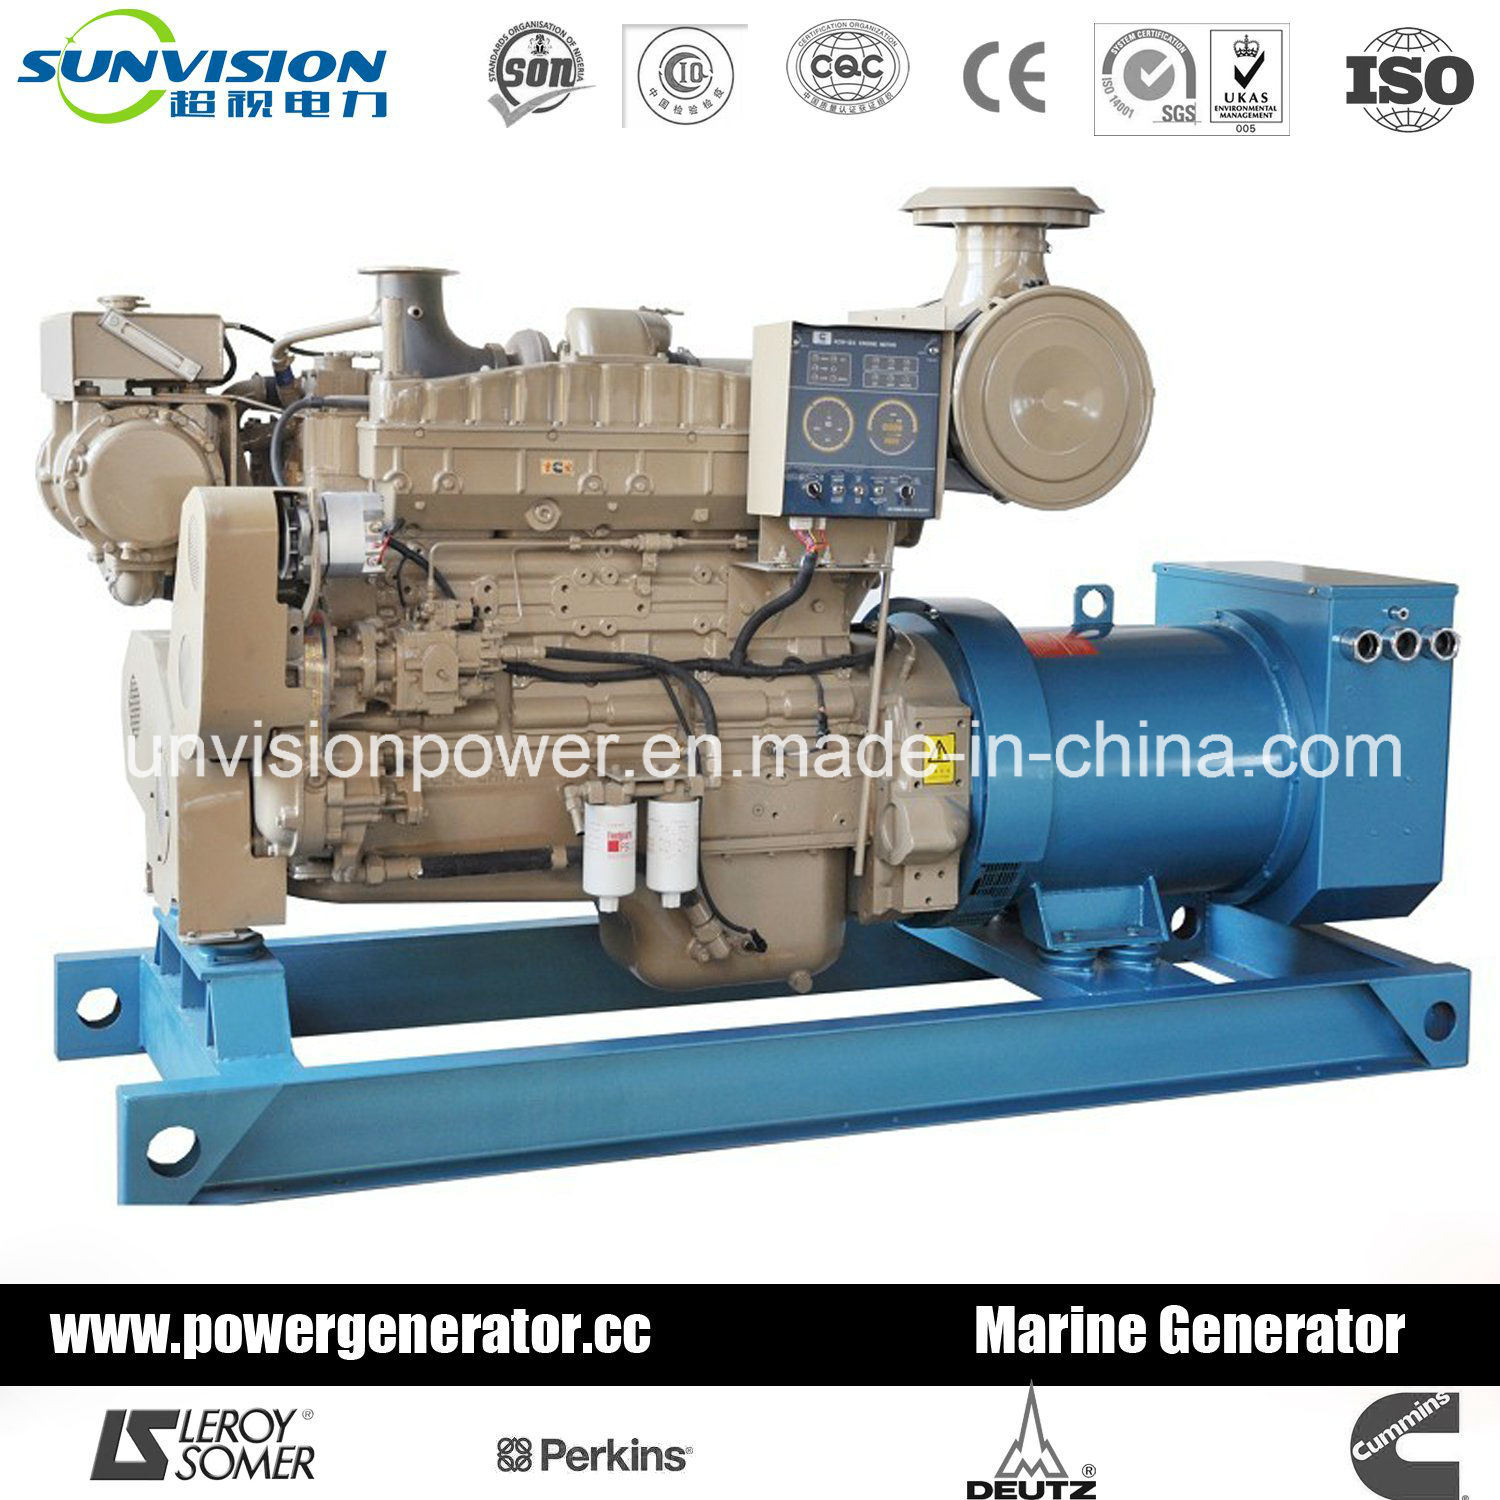 Prime 350kVA Diesel Generator Set, Cummins Marine Engine with Nta855-Dm